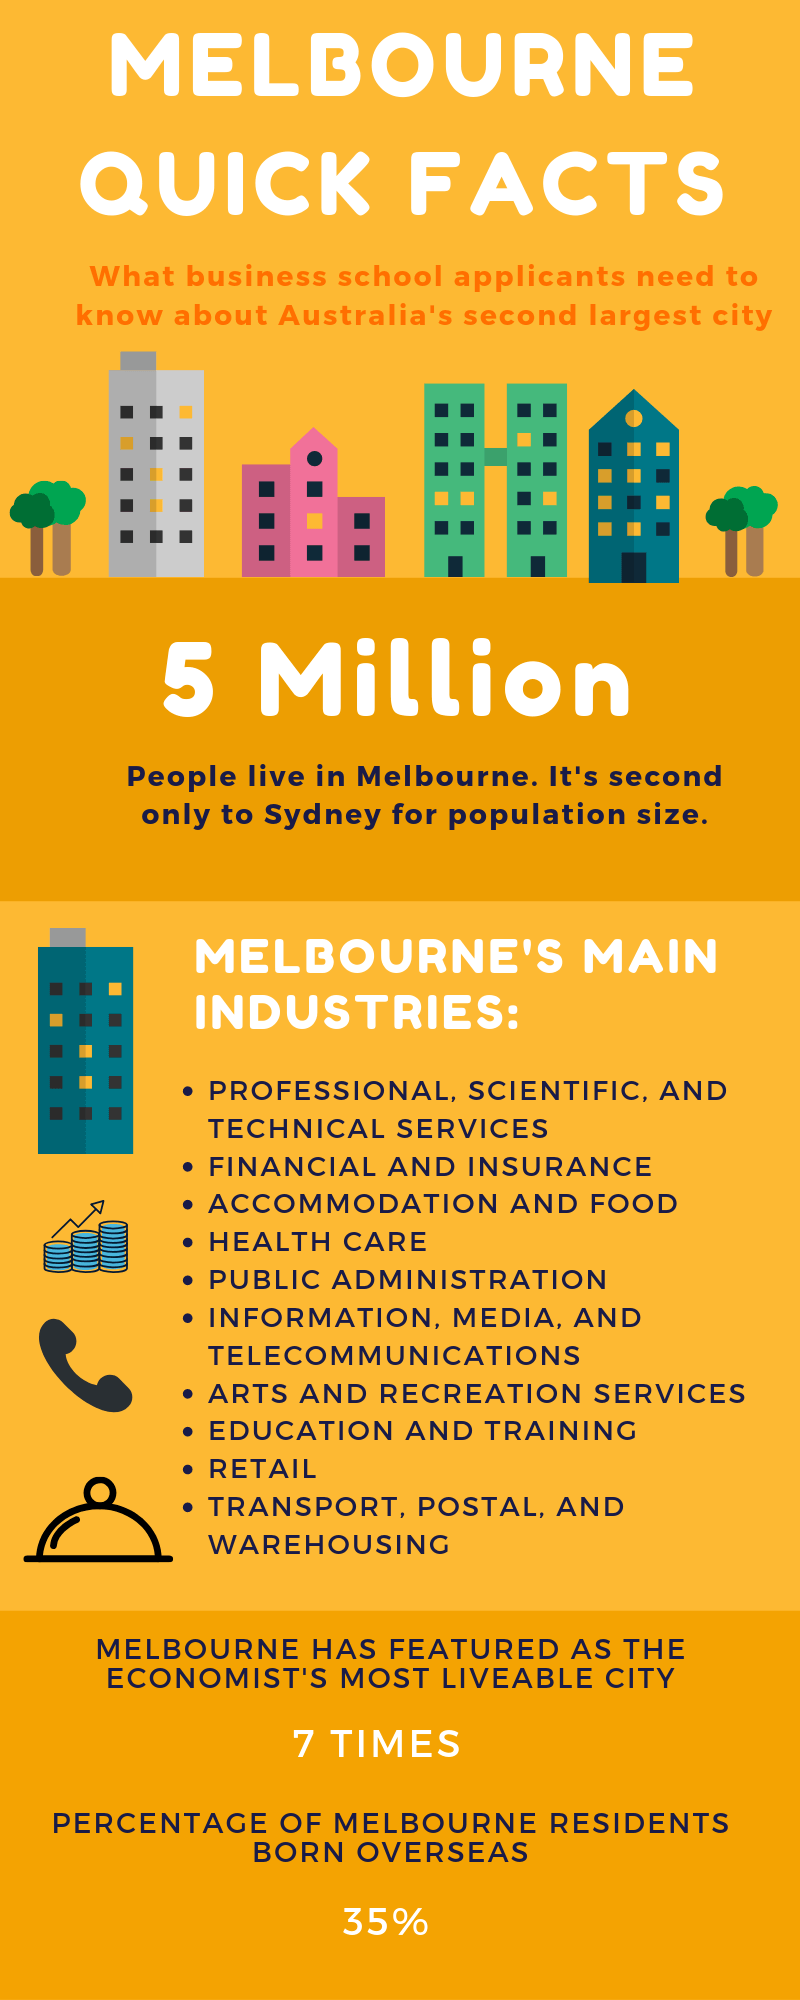 Melbourne quick facts infographic